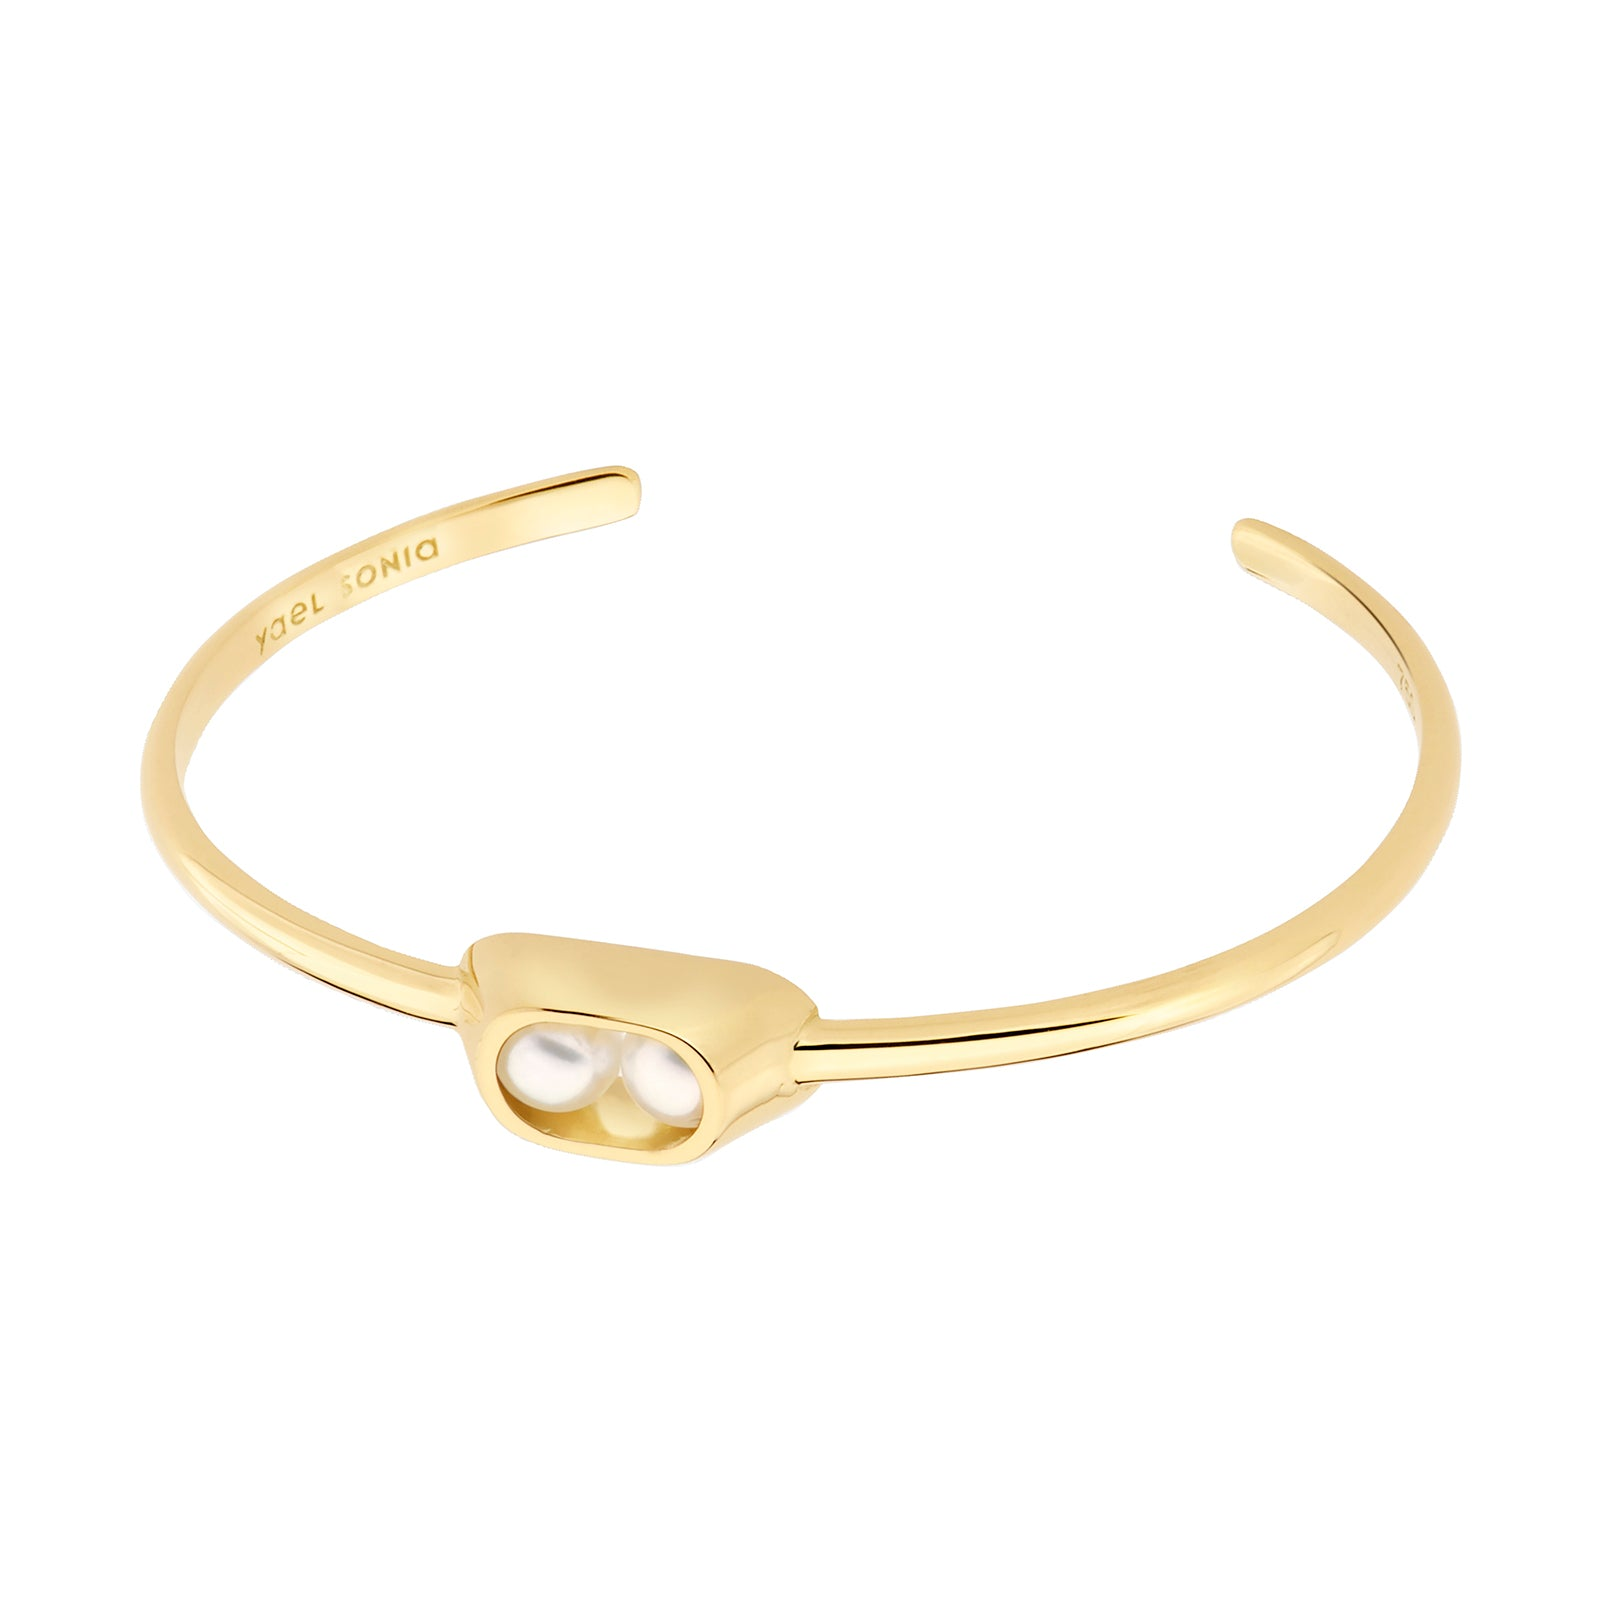 Yael Sonia Ellipse Cocoon Cuff - Bracelets - Broken English Jewelry